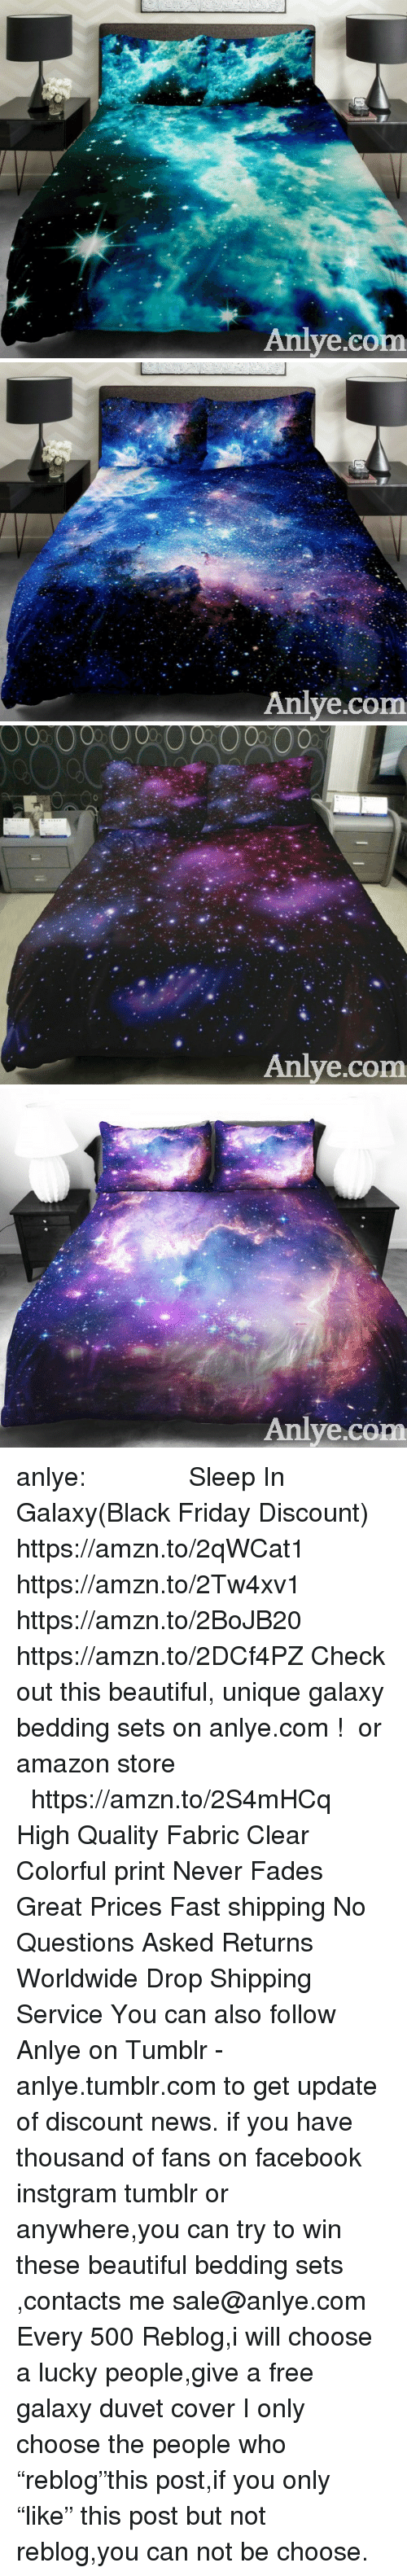 """Amazon, Beautiful, and Black Friday: Aniye.co   Anlye.com   00  00  00  002000  0  Anlye.com   Anlye.com anlye:       Sleep In Galaxy(Black Friday Discount)  https://amzn.to/2qWCat1 https://amzn.to/2Tw4xv1 https://amzn.to/2BoJB20 https://amzn.to/2DCf4PZ Check out this beautiful, unique galaxy bedding sets on anlye.com ! or amazon store https://amzn.to/2S4mHCq High Quality Fabric Clear  Colorful print Never Fades Great Prices Fast shipping No Questions Asked Returns Worldwide Drop Shipping Service You can also follow Anlye on Tumblr - anlye.tumblr.com to get update of discount news. if you have thousand of fans on facebook instgram tumblr or anywhere,you can try to win these beautiful bedding sets ,contacts me sale@anlye.com Every 500 Reblog,i will choose a lucky people,give a free galaxy duvet cover I only choose the people who """"reblog""""this post,if you only """"like"""" this post but not reblog,you can not be choose."""